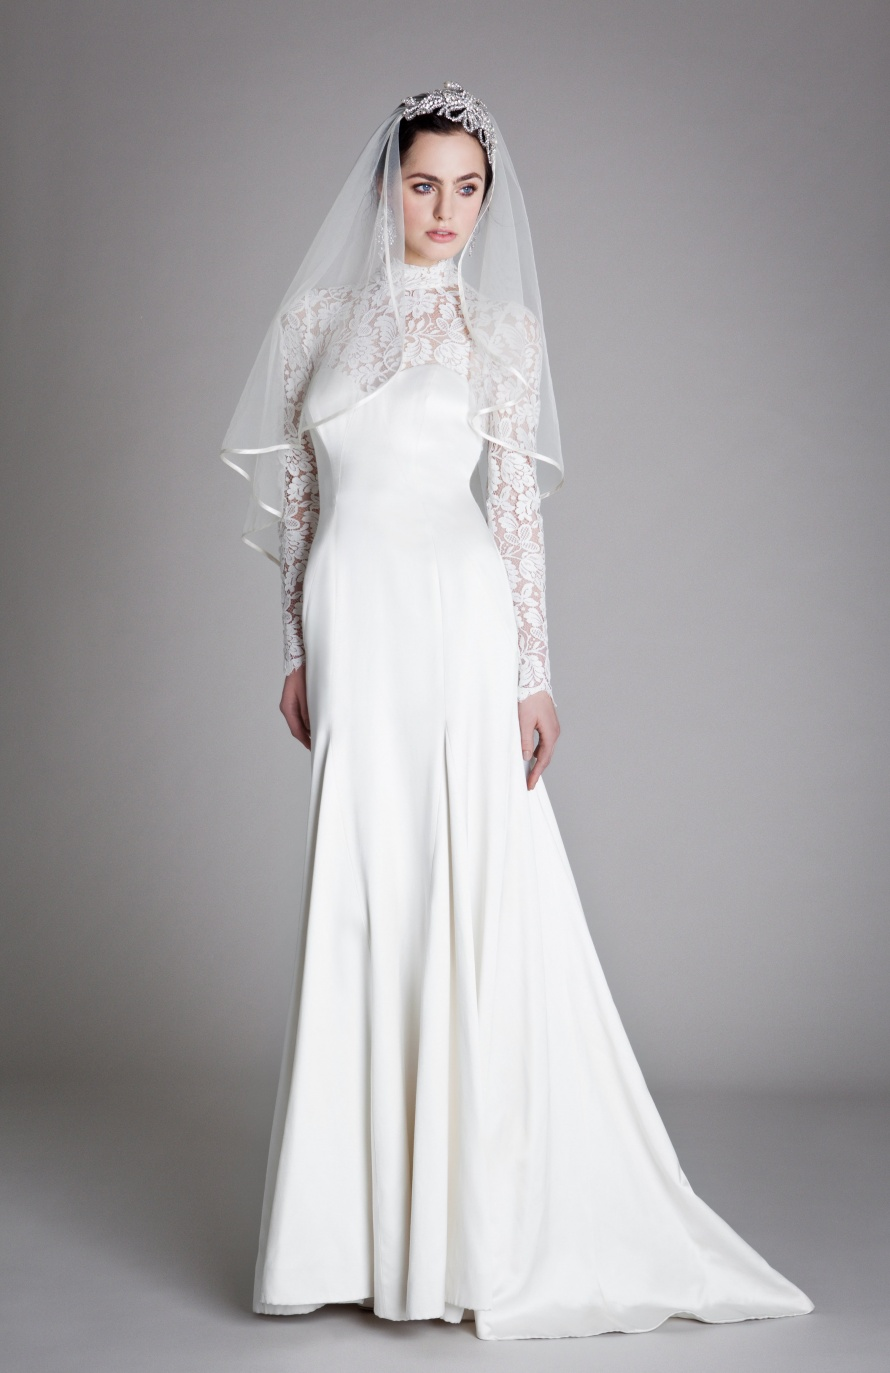 Snippets, Whispers & Ribbons - Long sleeved Vintage Wedding Dresses for an Autumn Bride